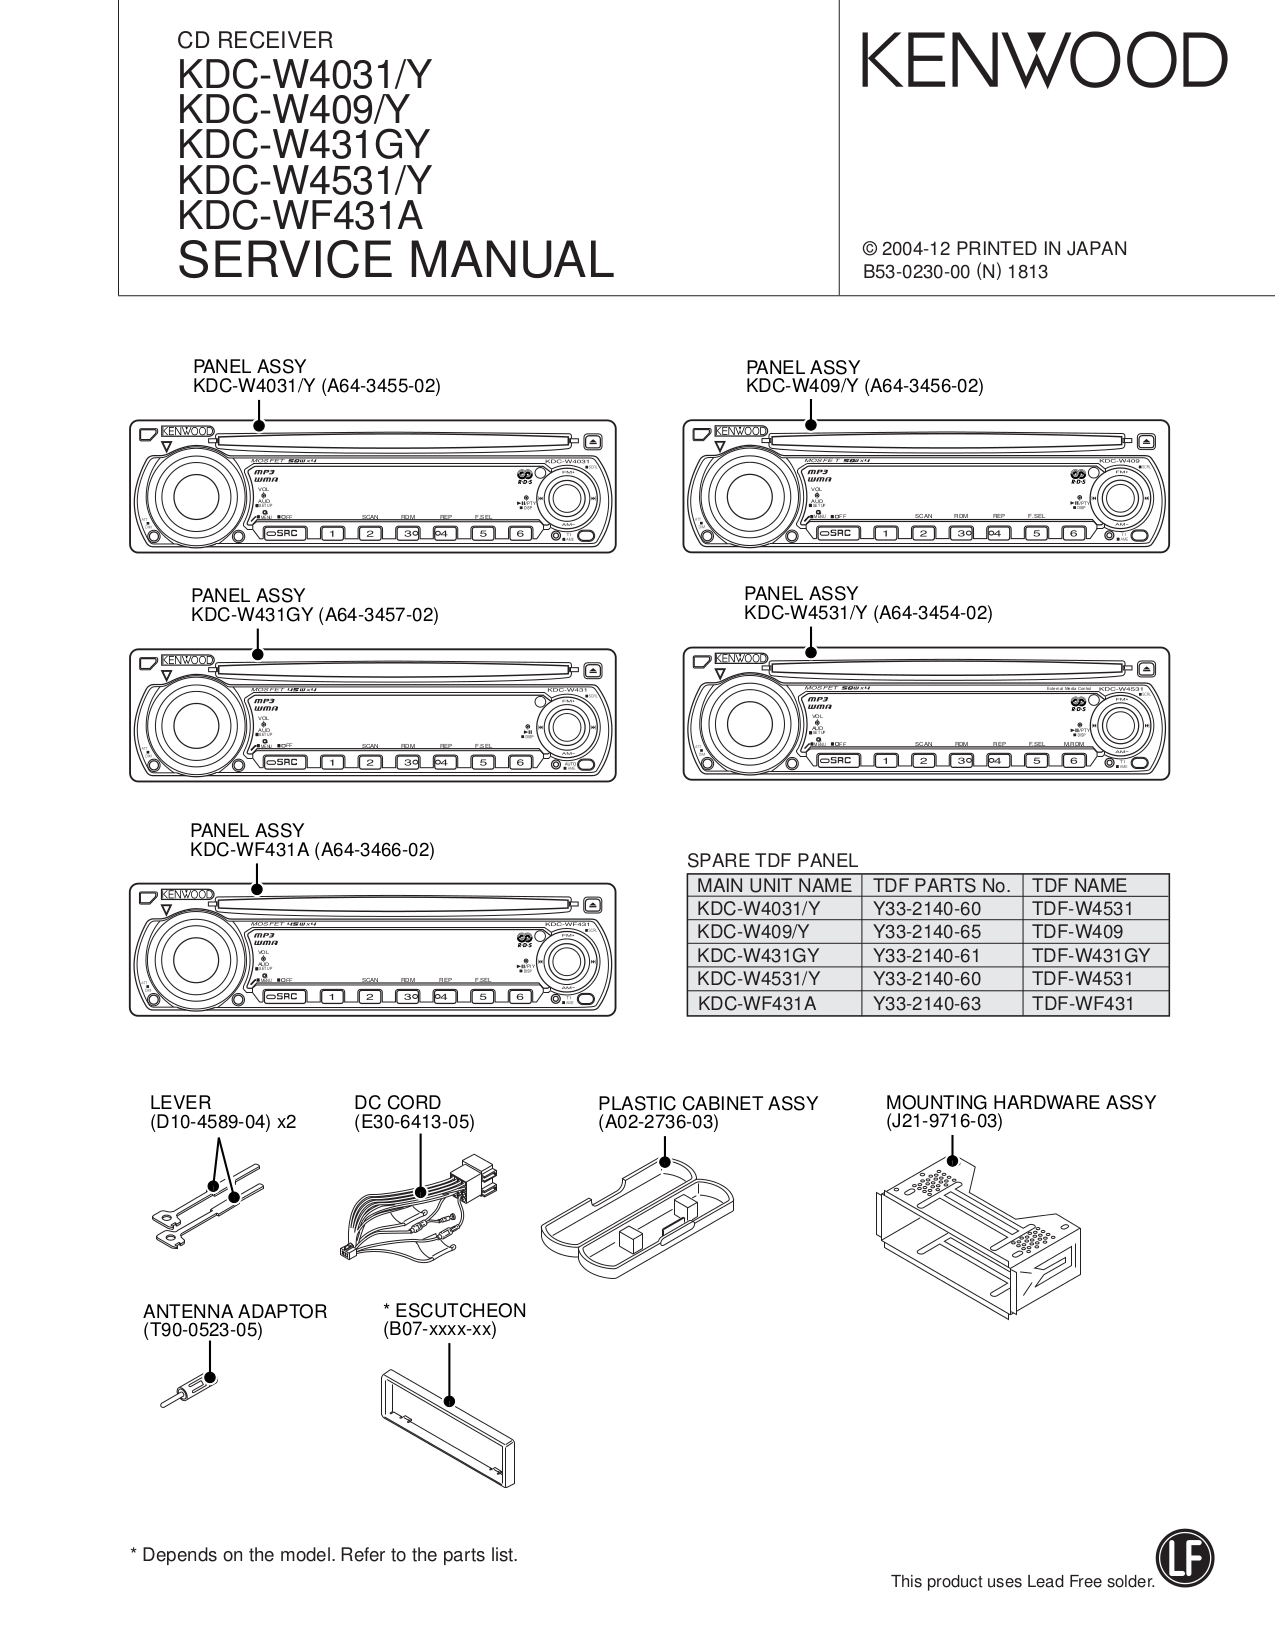 KDC W4031_W409_W431GY_W4531_WF431A.pdf 0 download free pdf for kenwood kdc 135 car receiver manual kenwood kdc 135 wiring diagram at panicattacktreatment.co